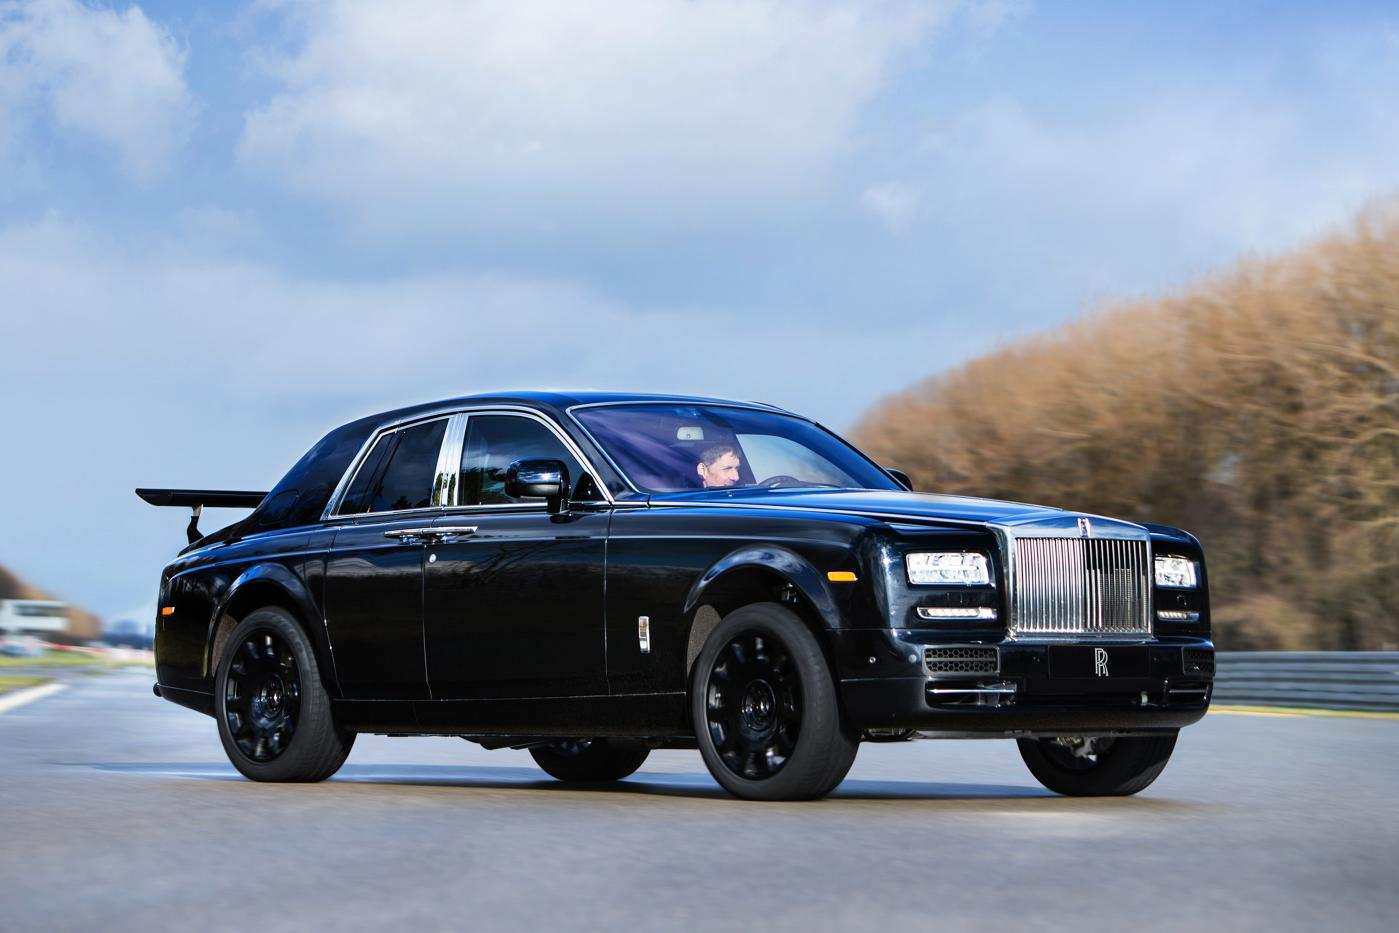 First Images of Upcoming Rolls-Royce 4x4 Mule Released - GTspirit